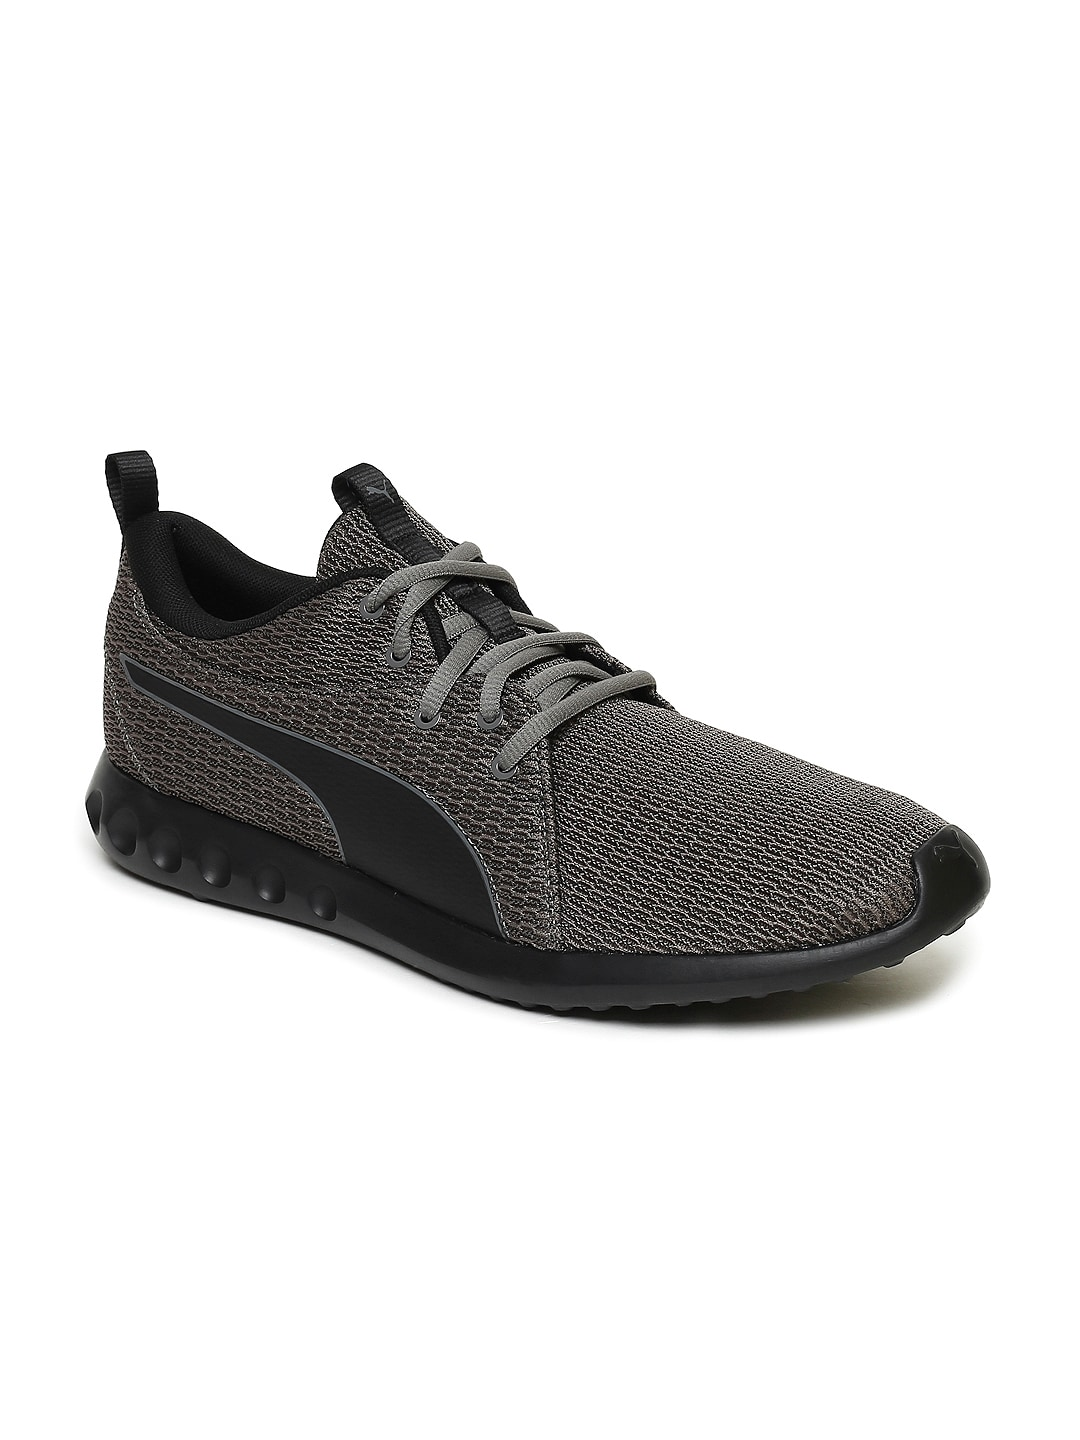 2c52b454eb0 Puma Shoes - Buy Puma Shoes for Men   Women Online in India